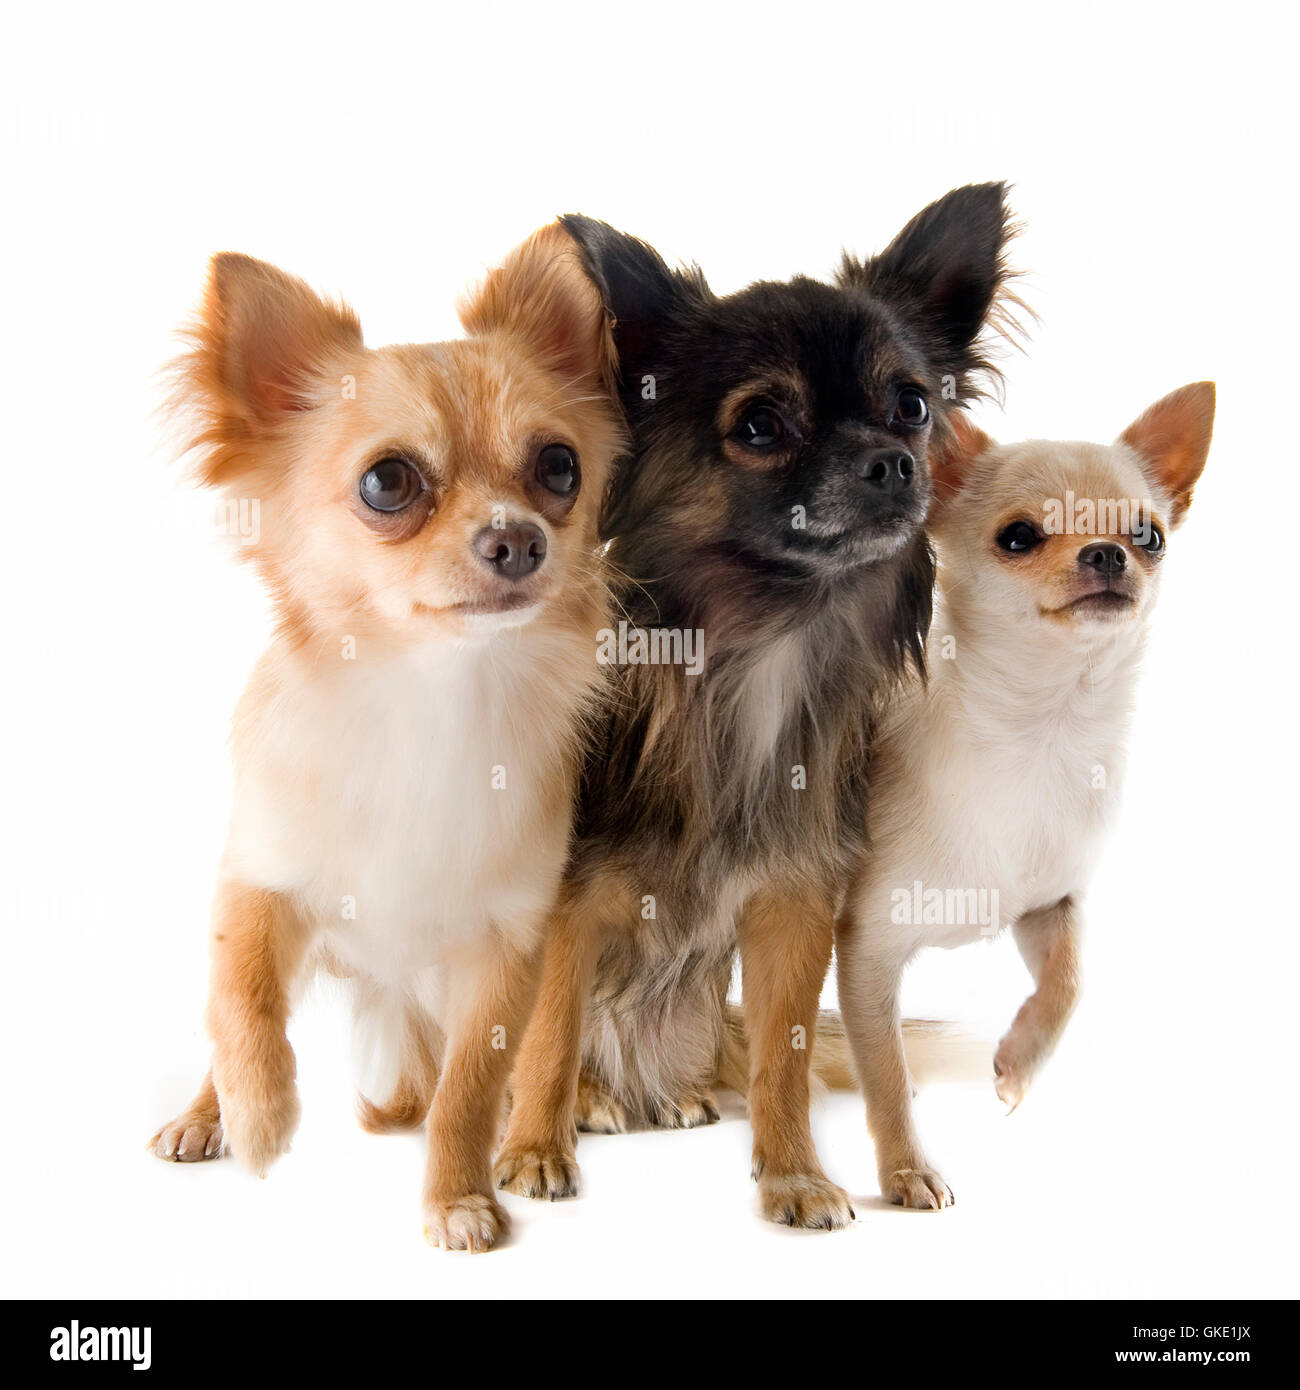 animal pet dog - Stock Image